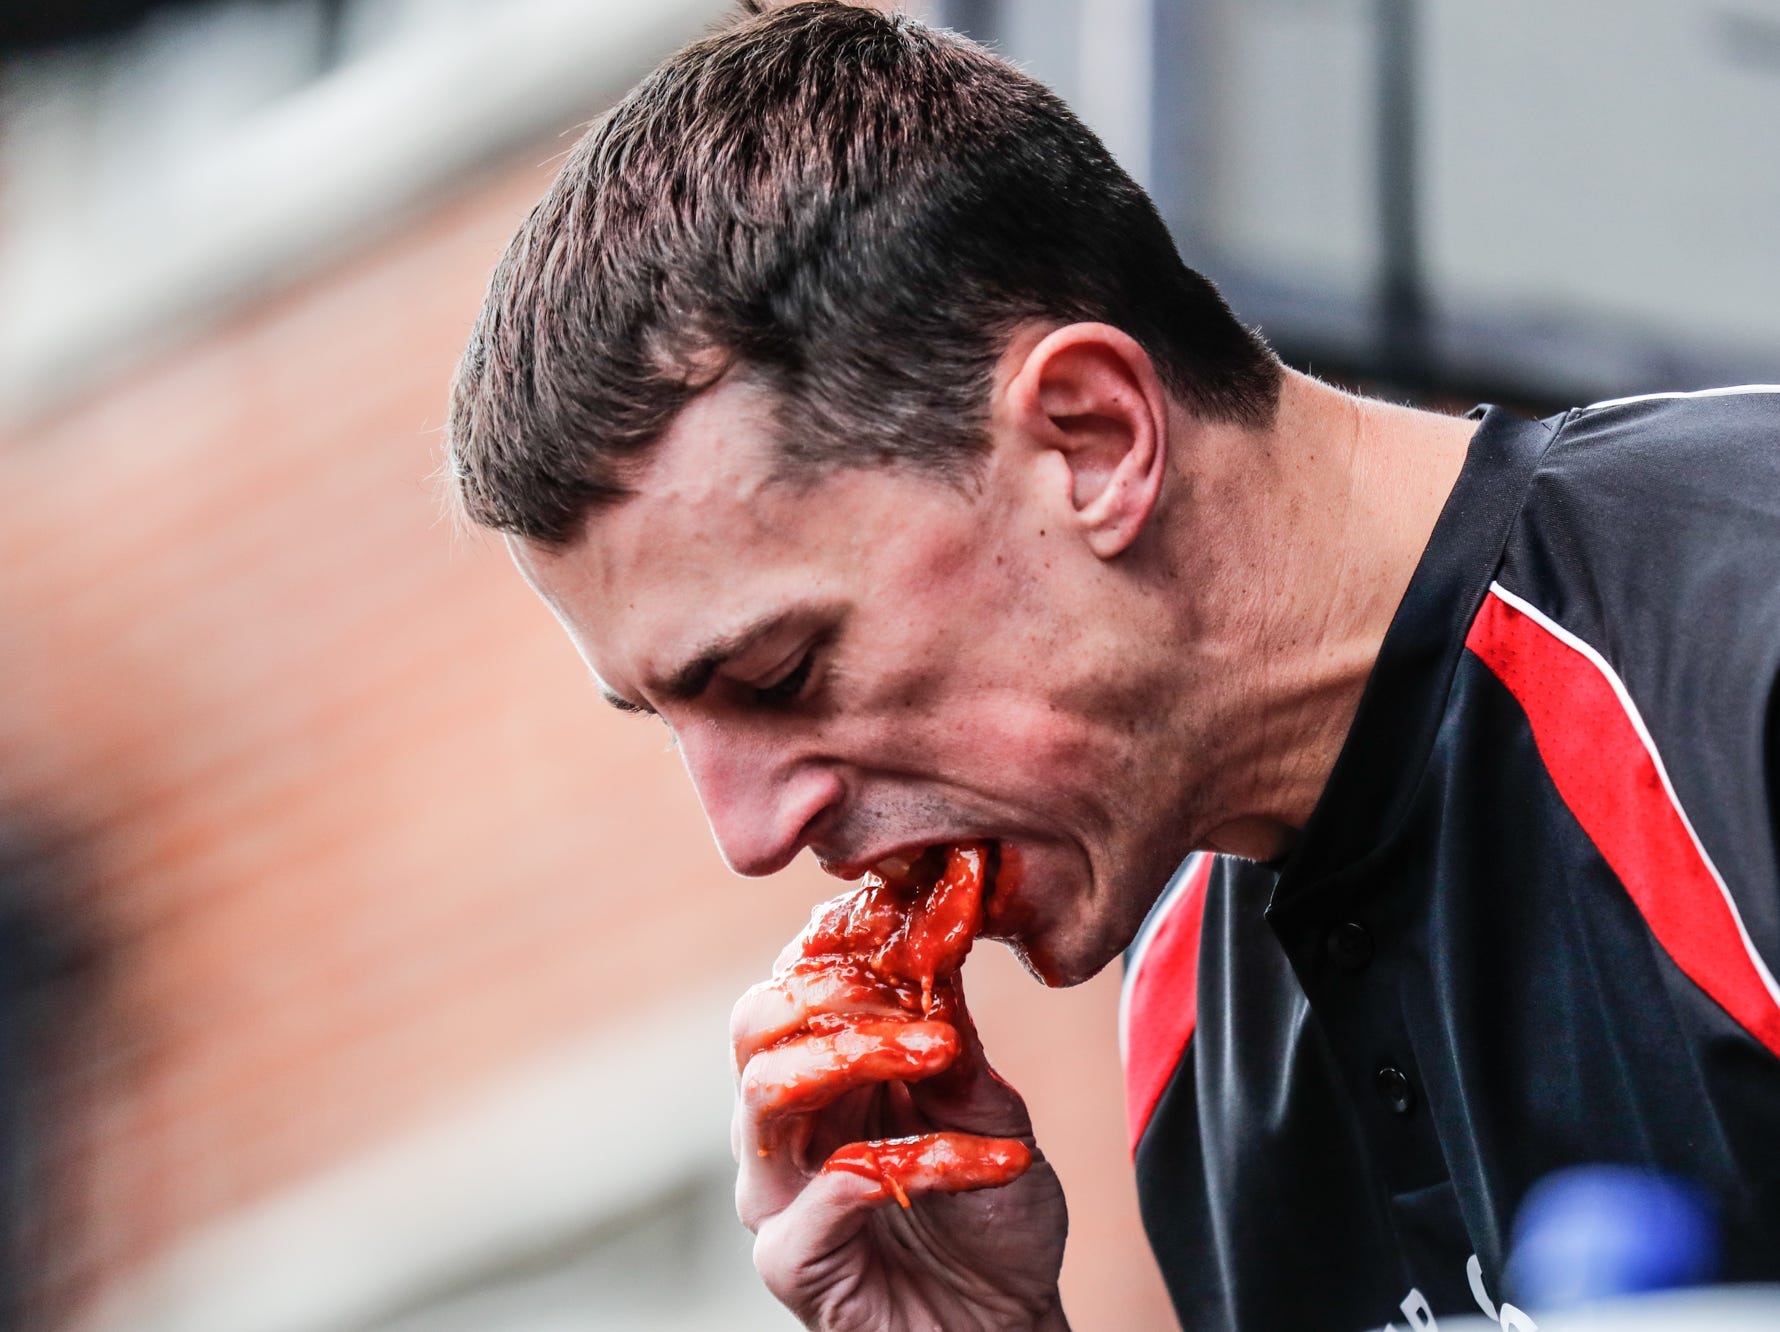 Major League Eater, Derek Jacobs competes in the sixth annual World Famous St. Elmo Shrimp Cocktail Eating Championship, held during the Meijer Tailgate Party on Georgia St. in Indianapolis on Saturday, Dec. 1, 2018.